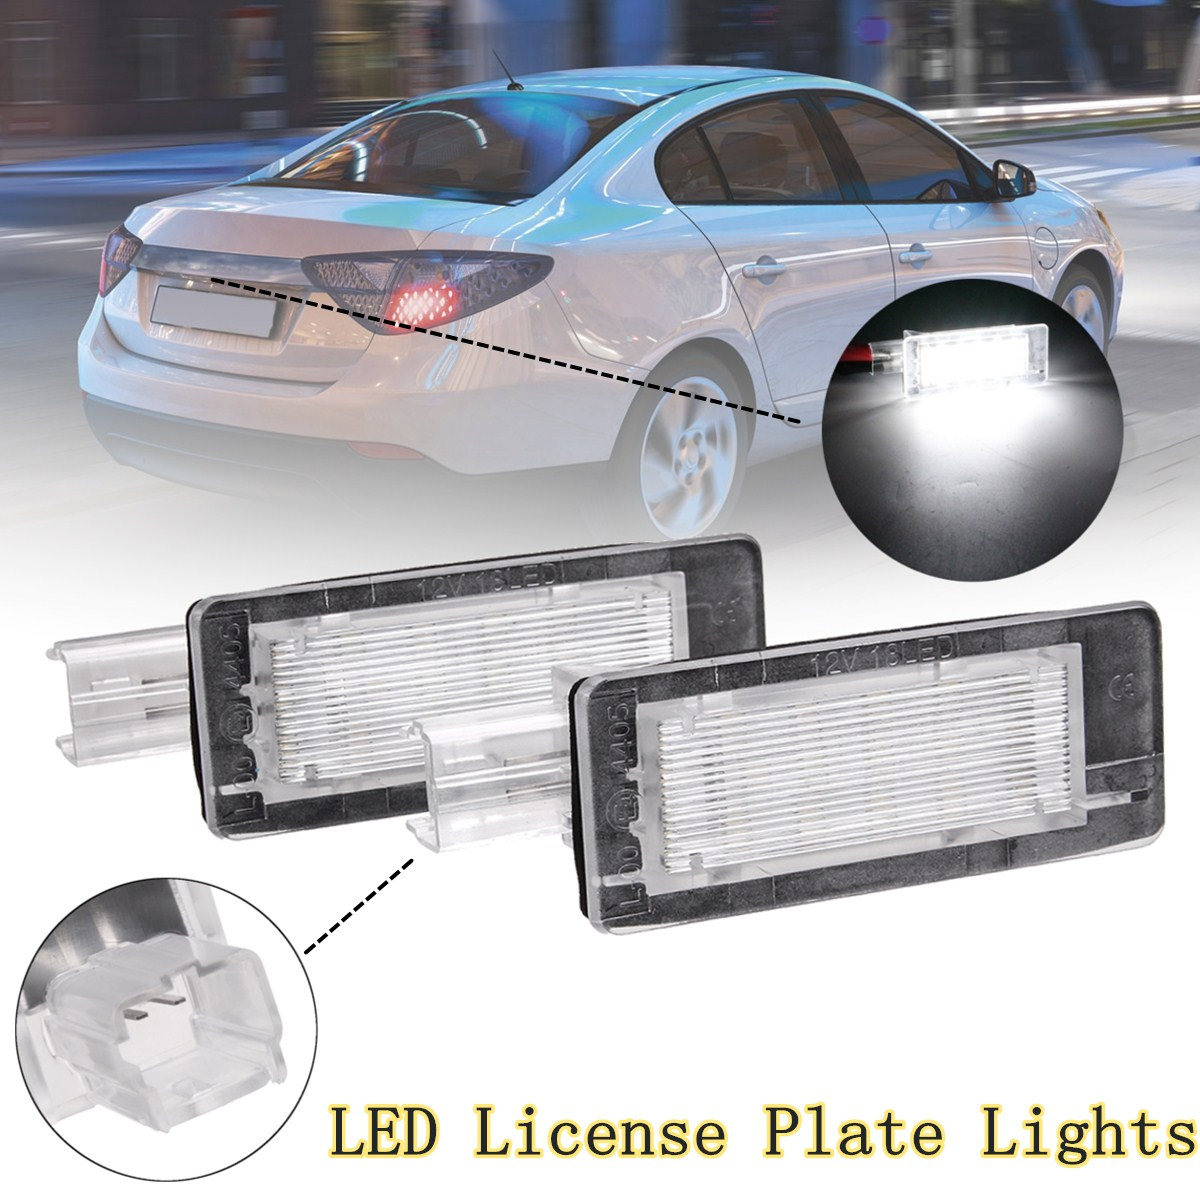 #8200013577 Car <font><b>Led</b></font> license plate Light For <font><b>Renault</b></font> Espace IV Scenic II III Laguna II Fluence Captur <font><b>Modus</b></font> For Dacia Lodgy Logan image